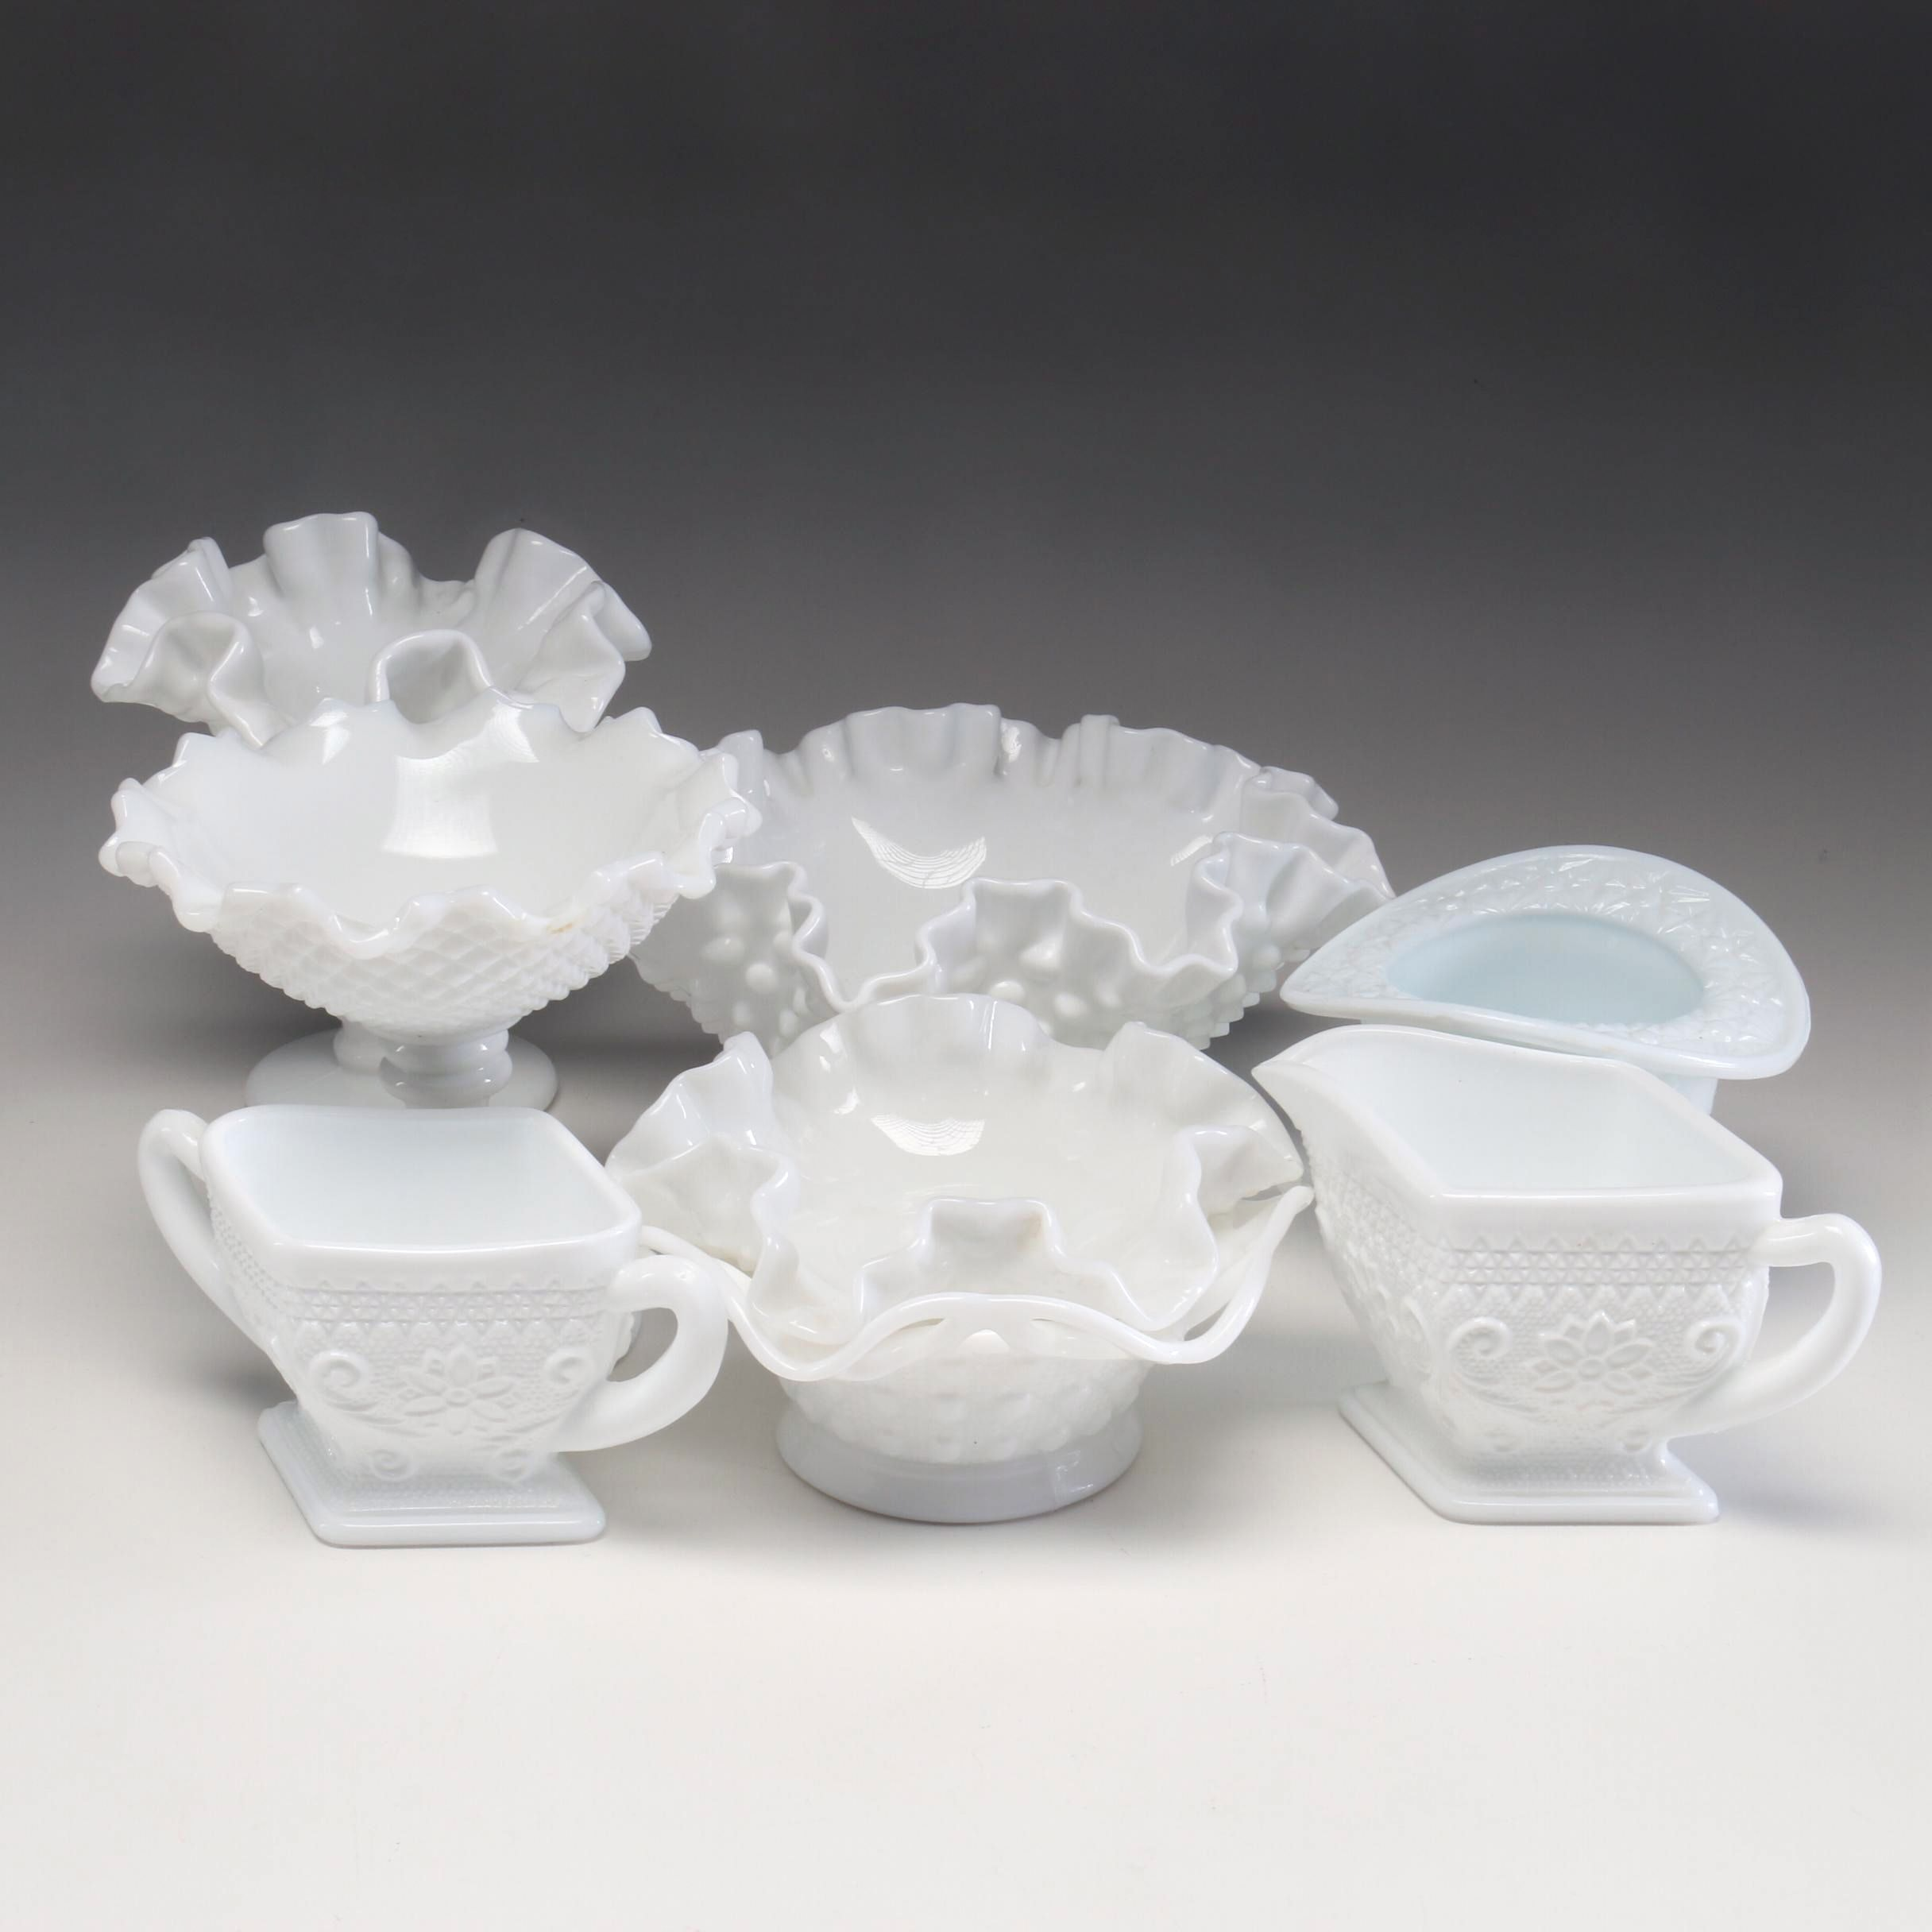 Milk Glass Serving and Presentation Pieces